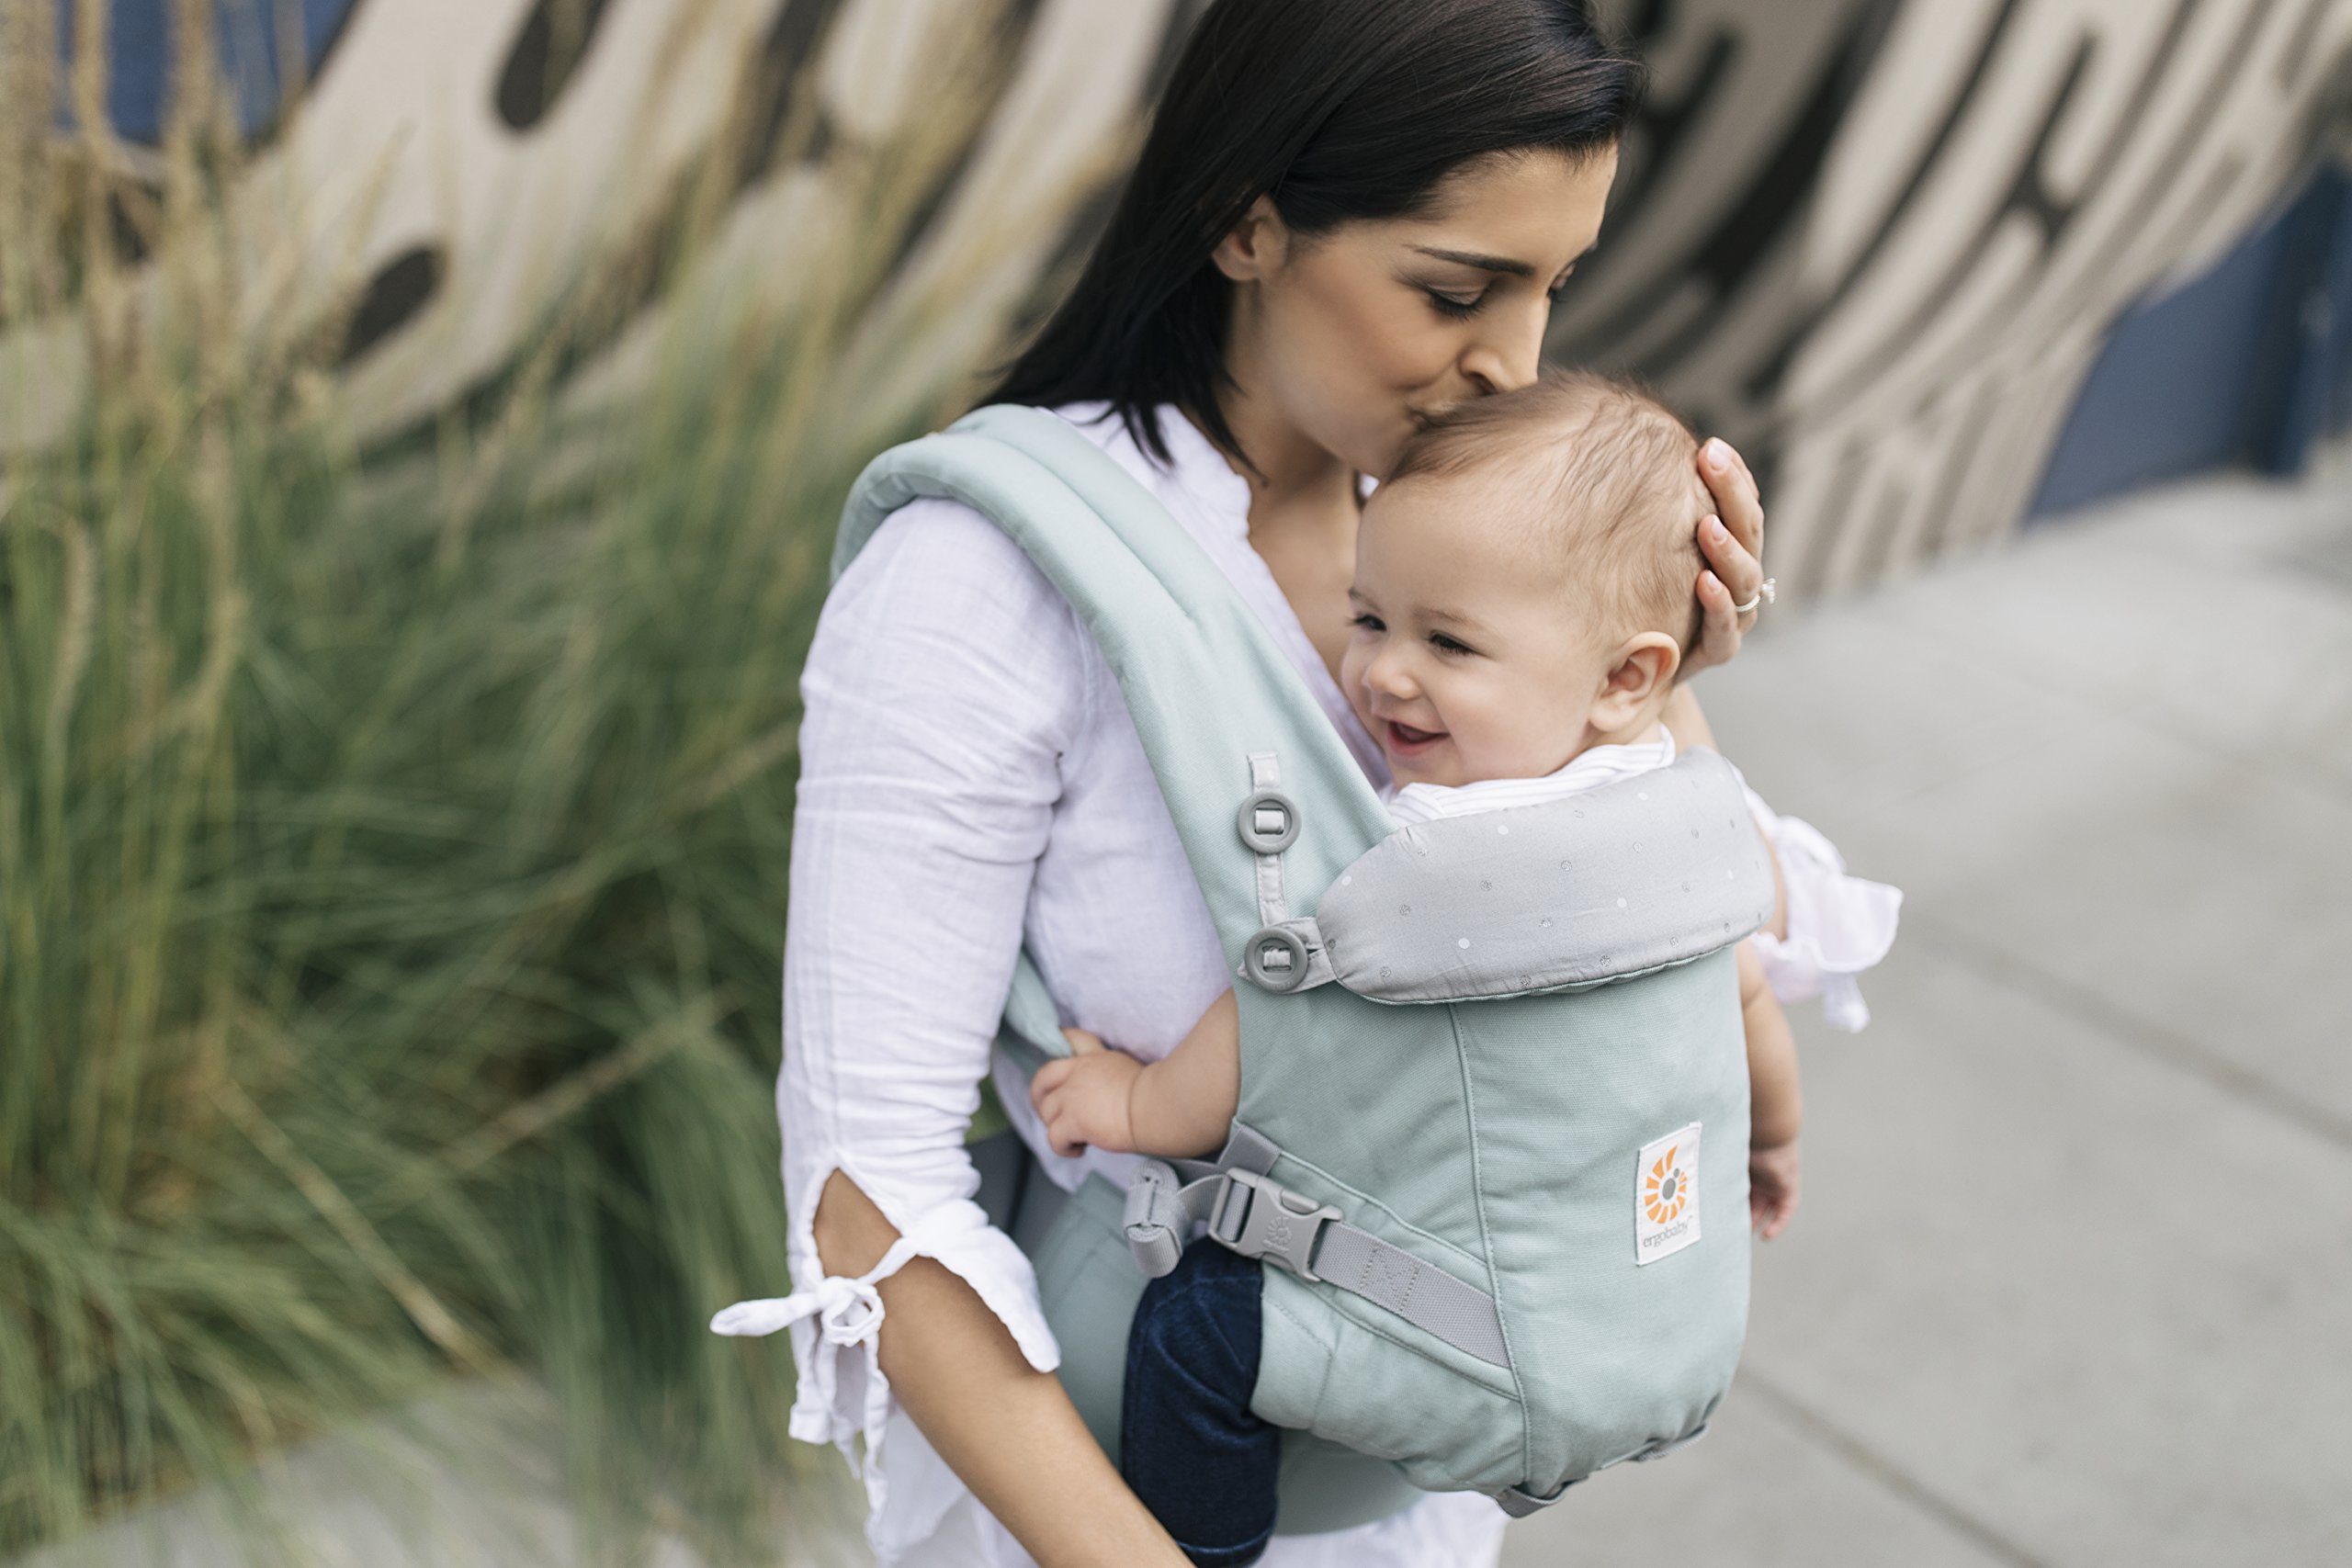 Ergobaby Baby Carrier for Newborn to Toddler up to 20kg, Adapt Frosted Mint 3-Position Ergonomic Child Carriers Front Backpack Ergobaby  5